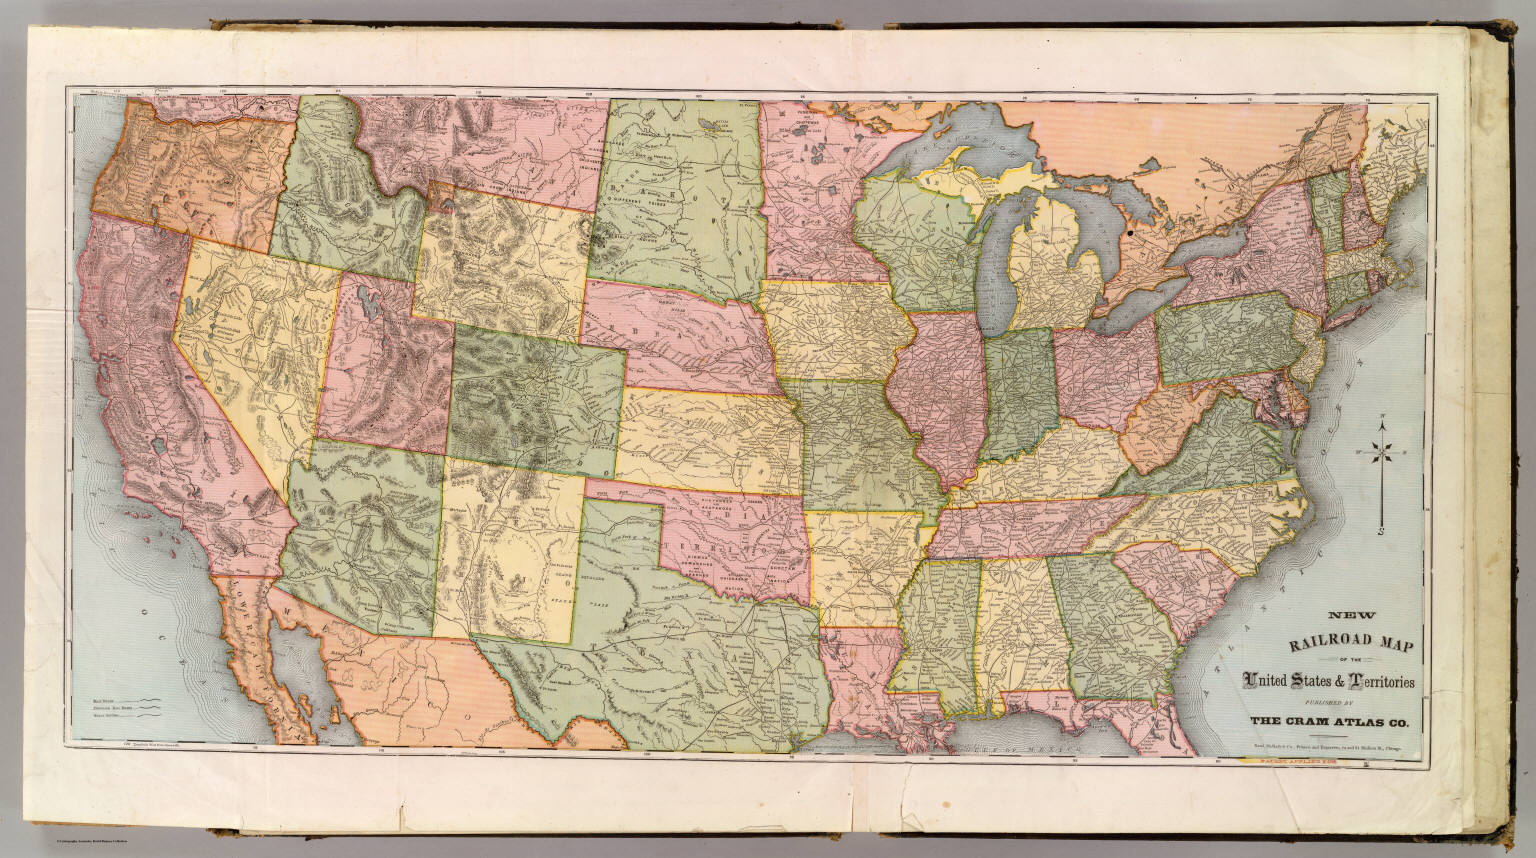 new railroad map of the united states territories cram atlas company 1875